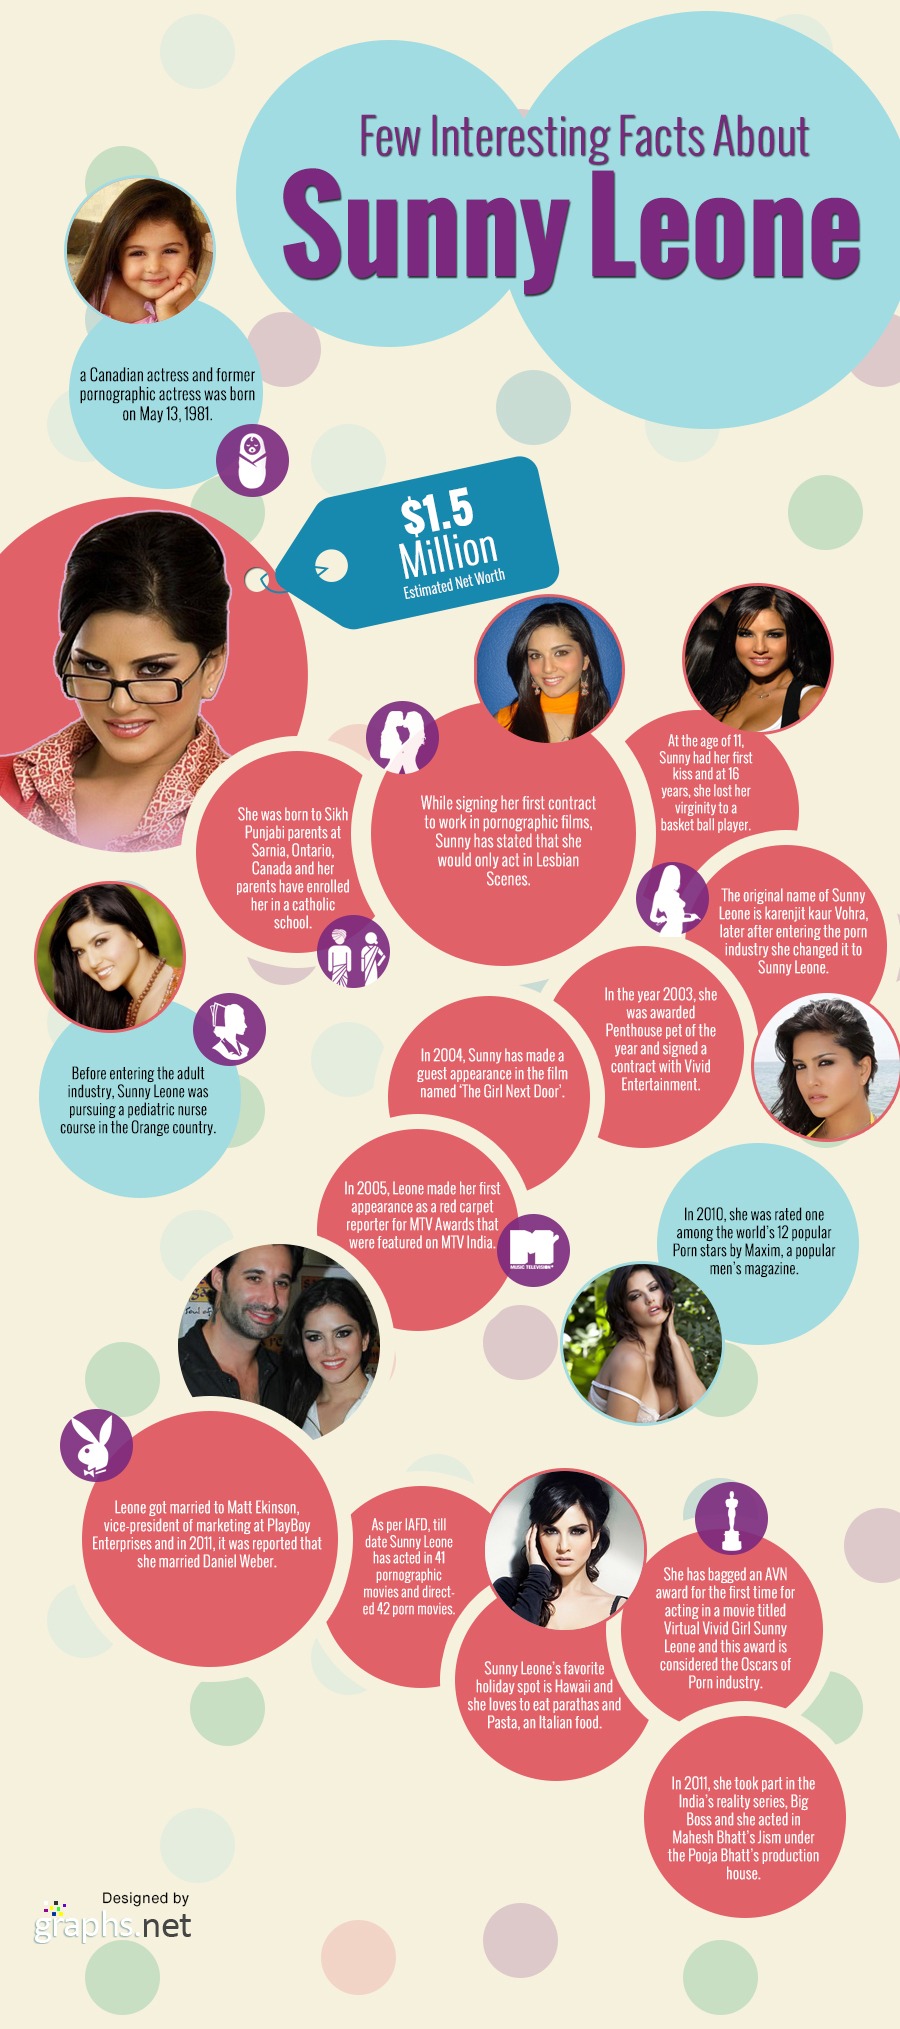 Few Interesting Facts About Sunny Leone